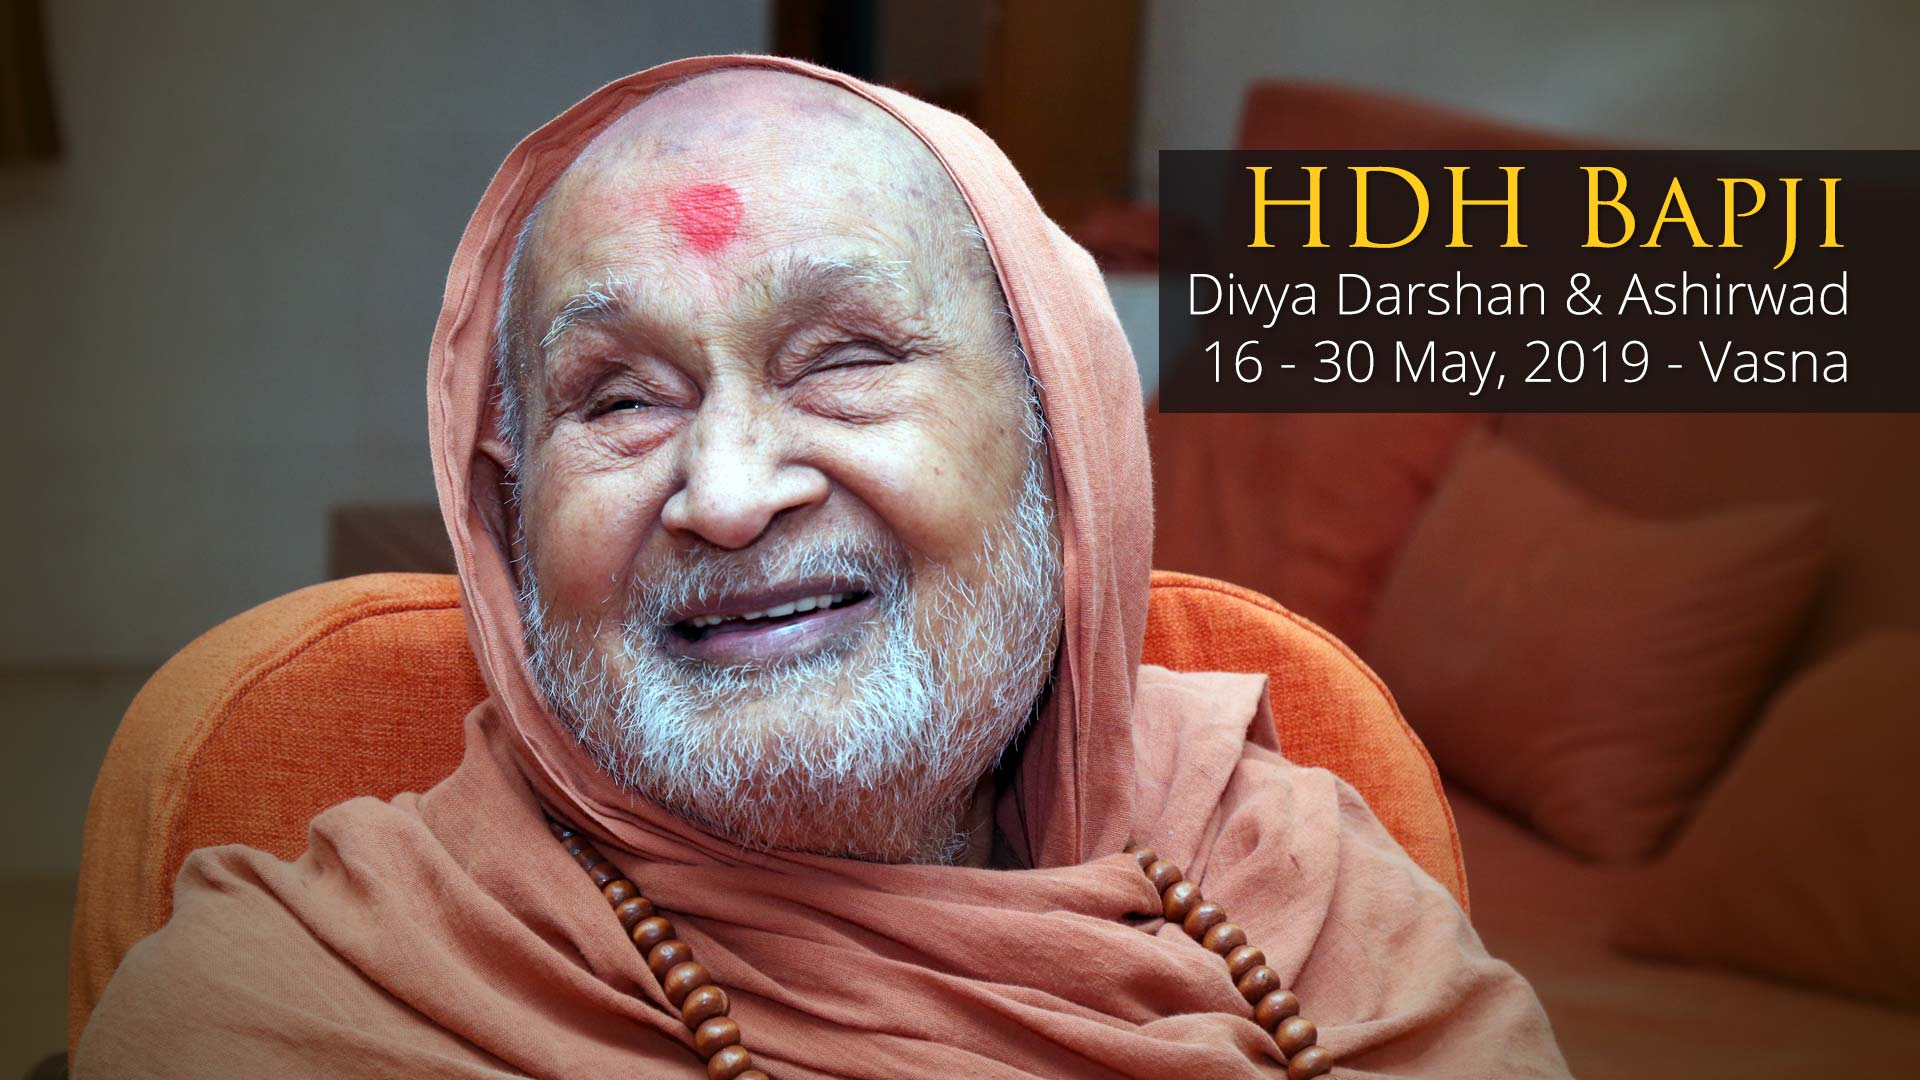 HDH Bapji Divya Darshan-Ashirwad | 16 to 30 May, 2019